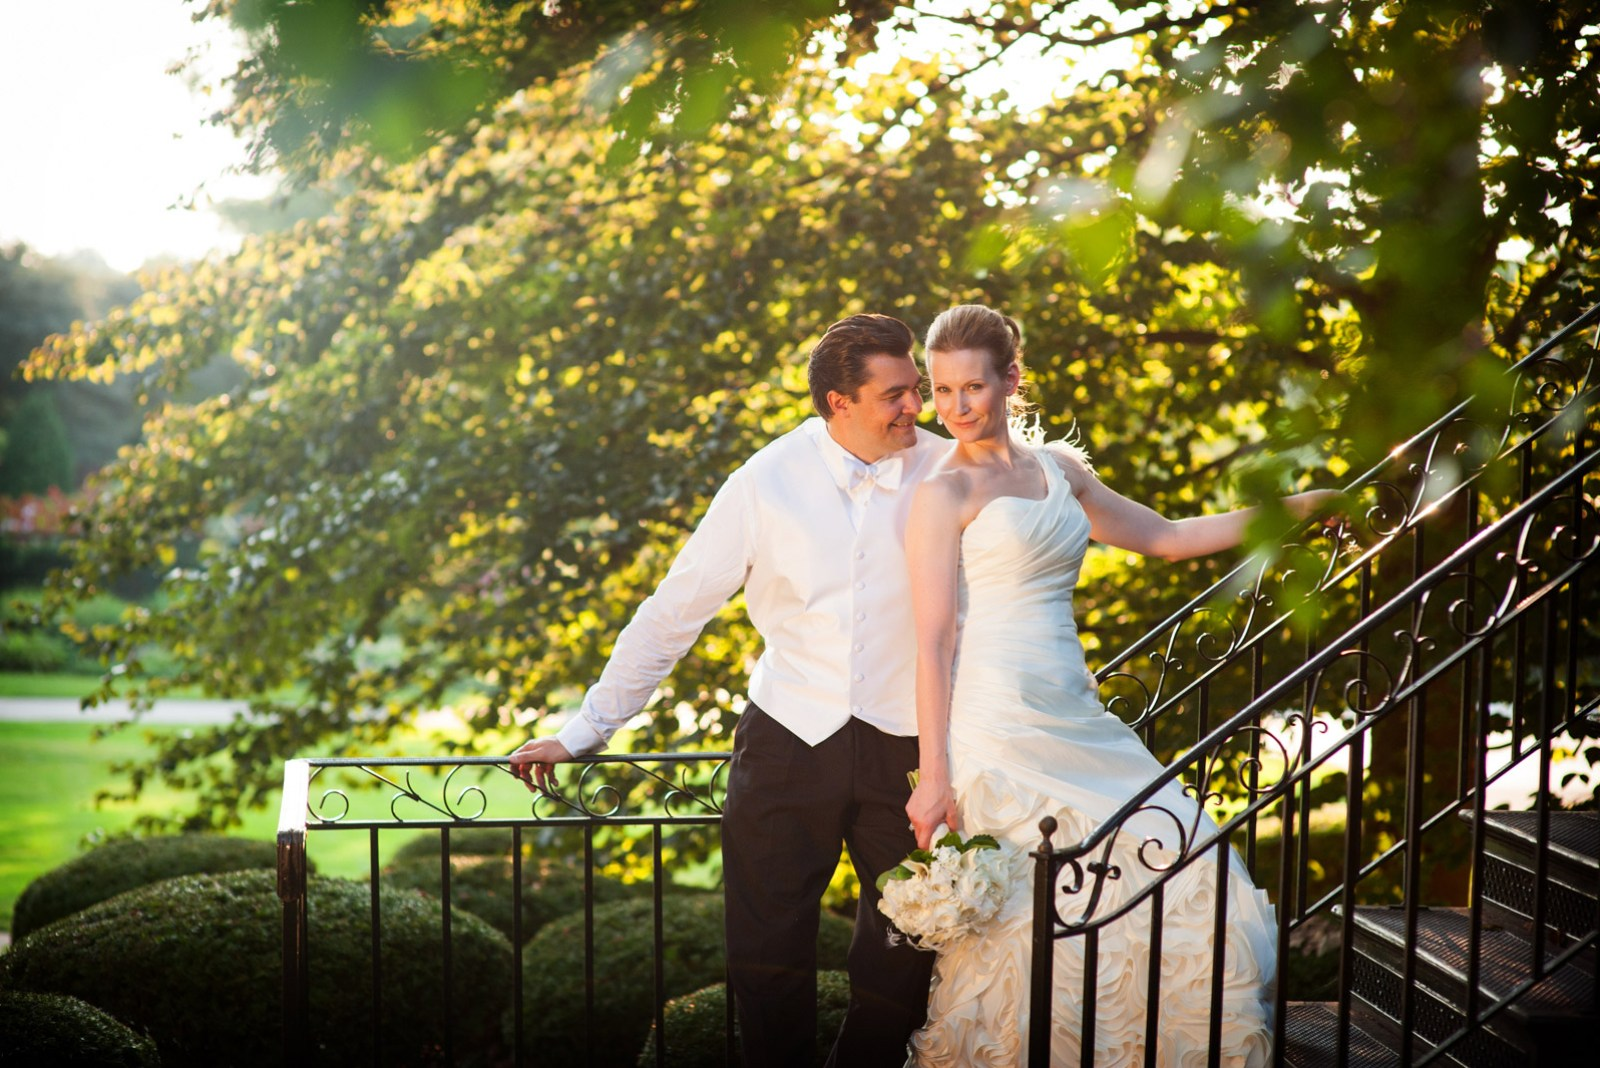 Fall wedding at Cantigny Park in Wheaton featuring a bride and groom under trees